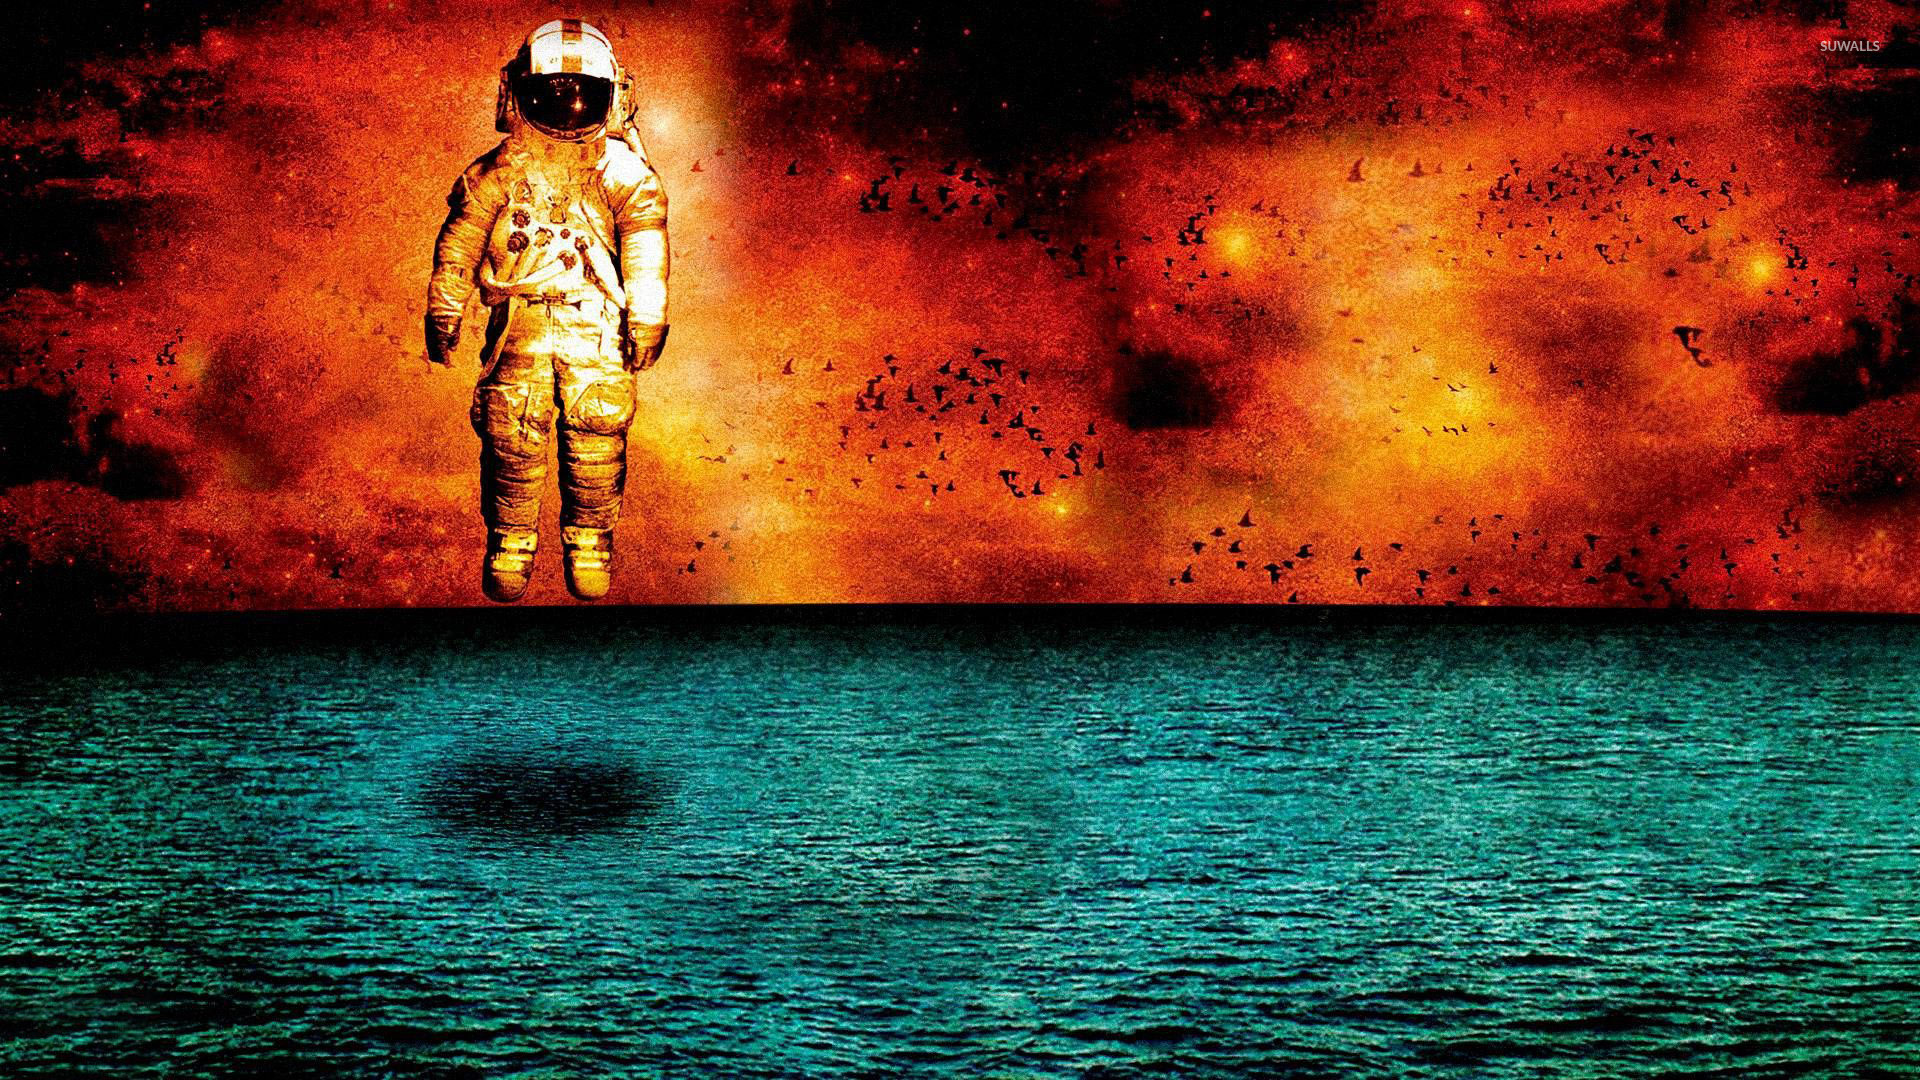 Brand New   Deja Entendu wallpaper   Digital Art wallpapers   27467 1366x768